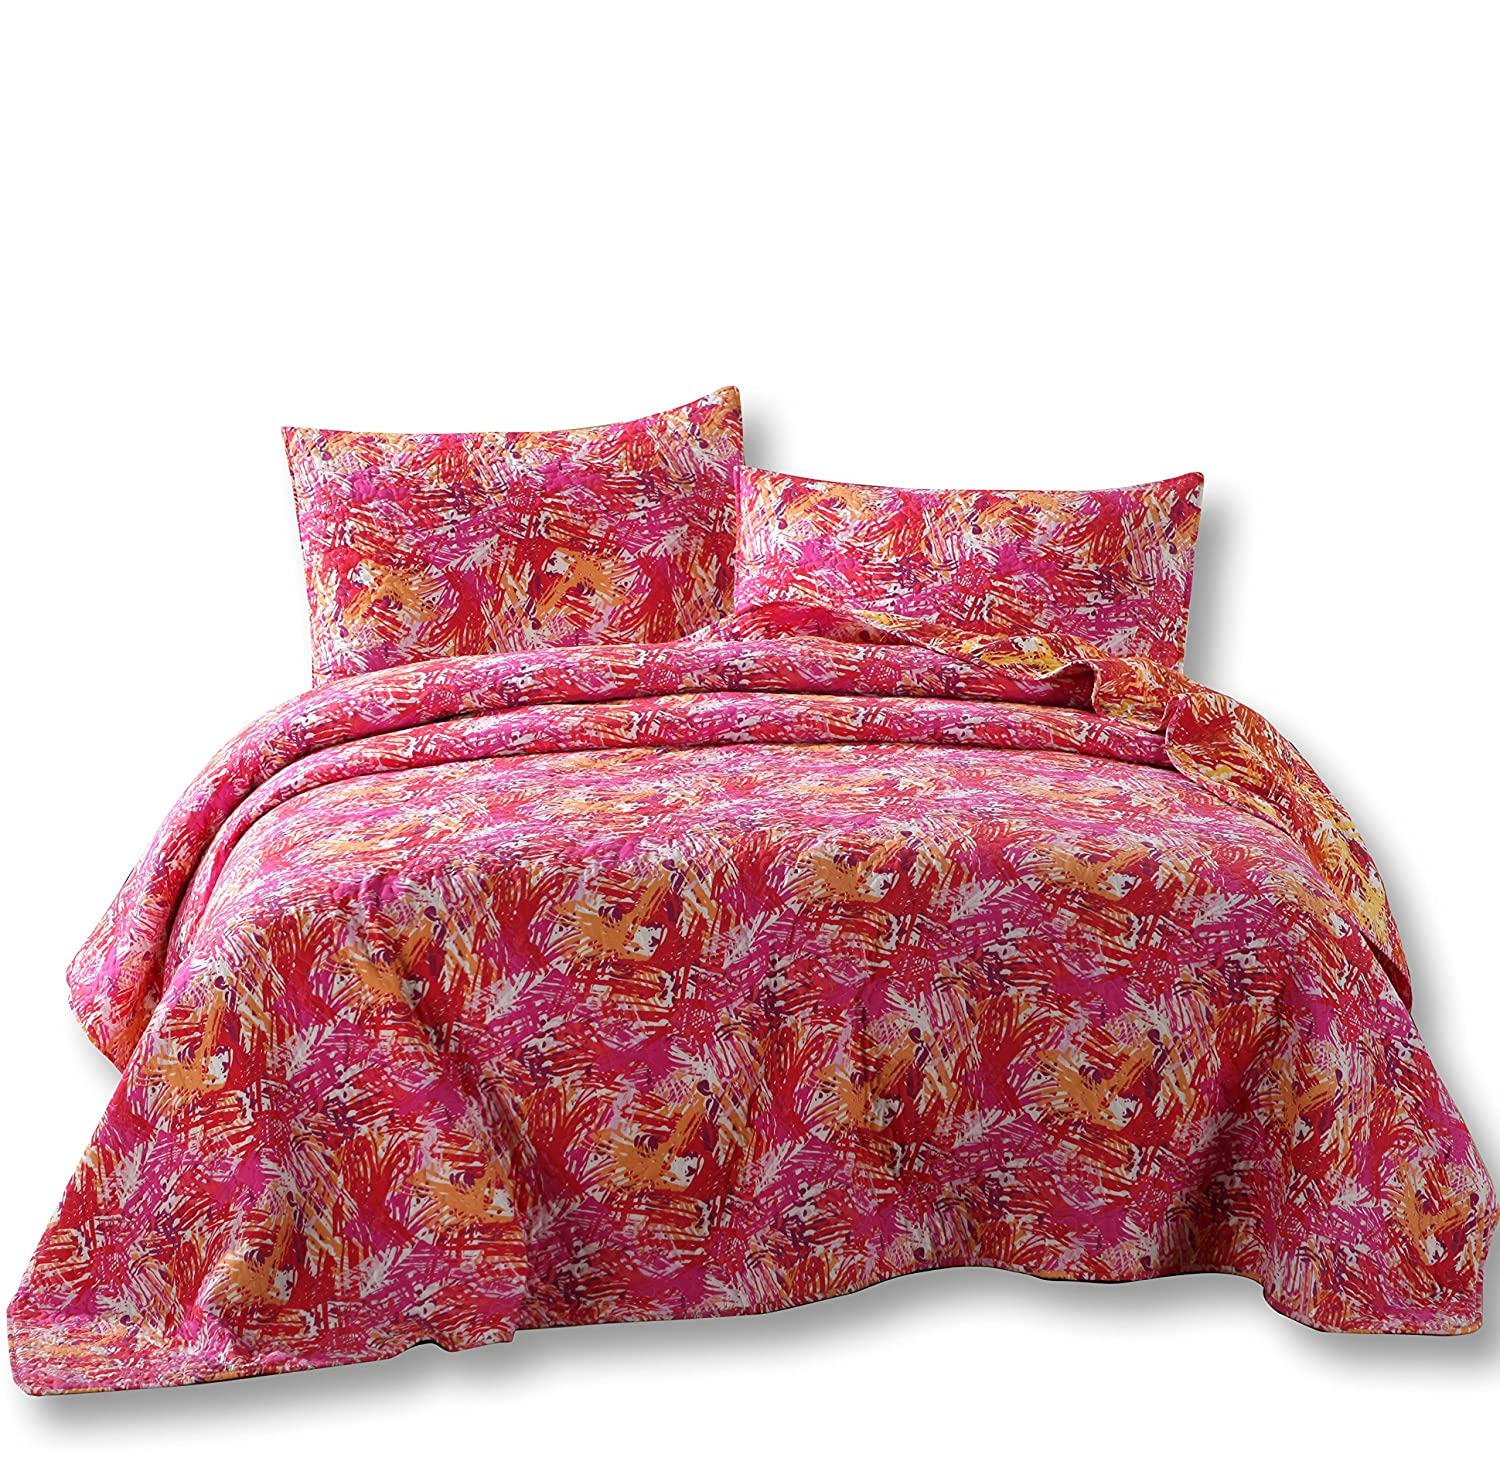 DaDa Bedding Starburst Pop Reversible - Multi Colorful Quilted Bedspread Set - Bright Vibrant Pink Orange Purple - Twin - 2-Pieces KBJ1625-T